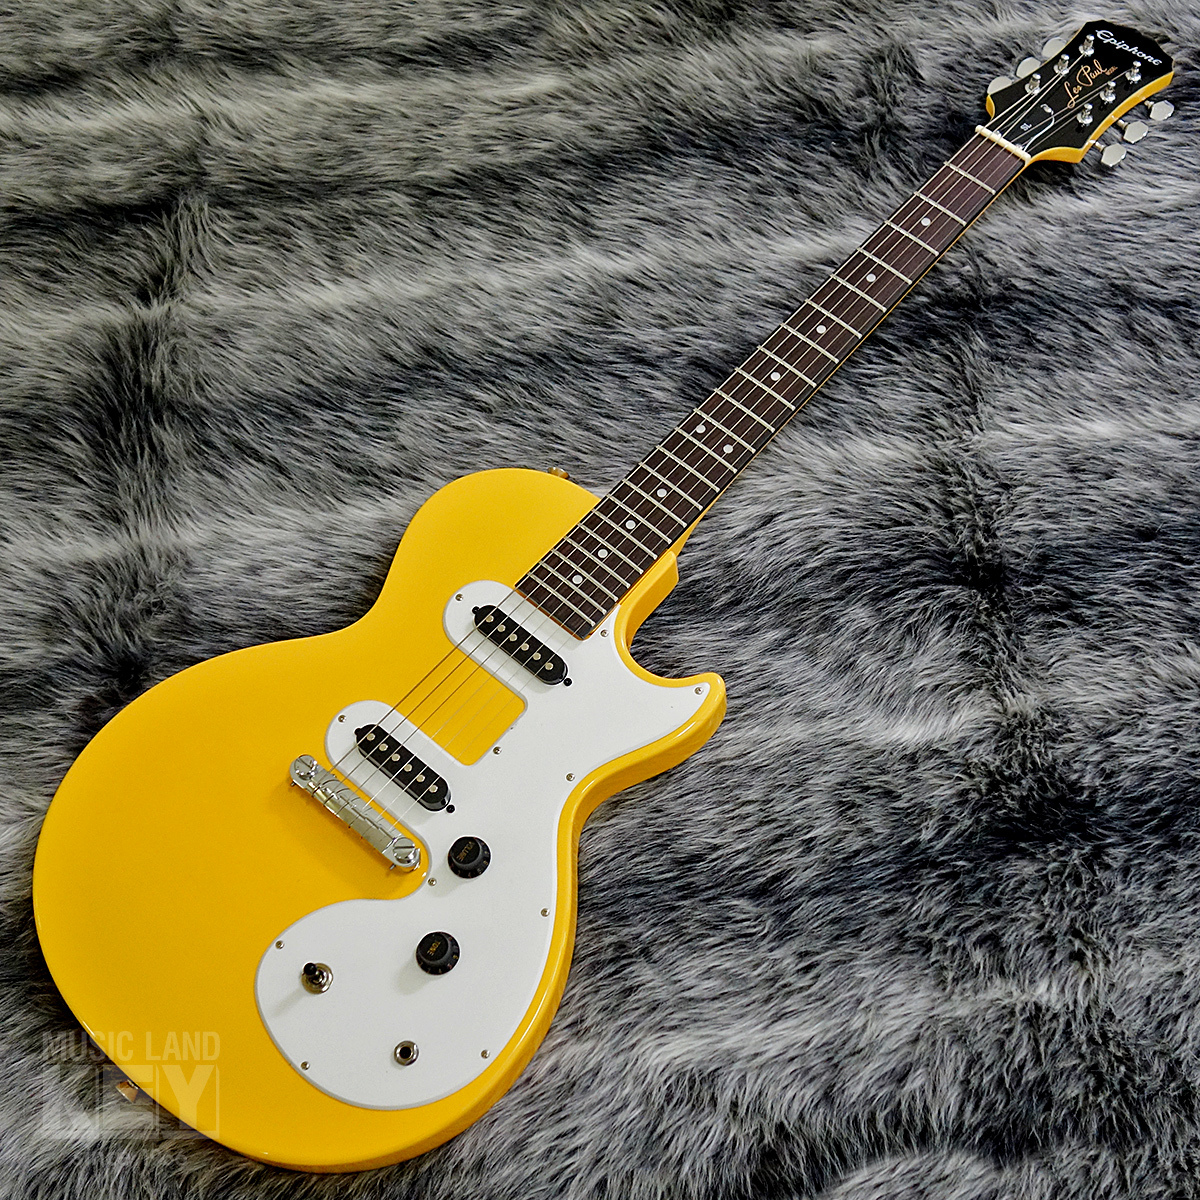 Epiphone Les Paul SL Sunset Yellow [lightweight, compact cost performance model stock !!!!]